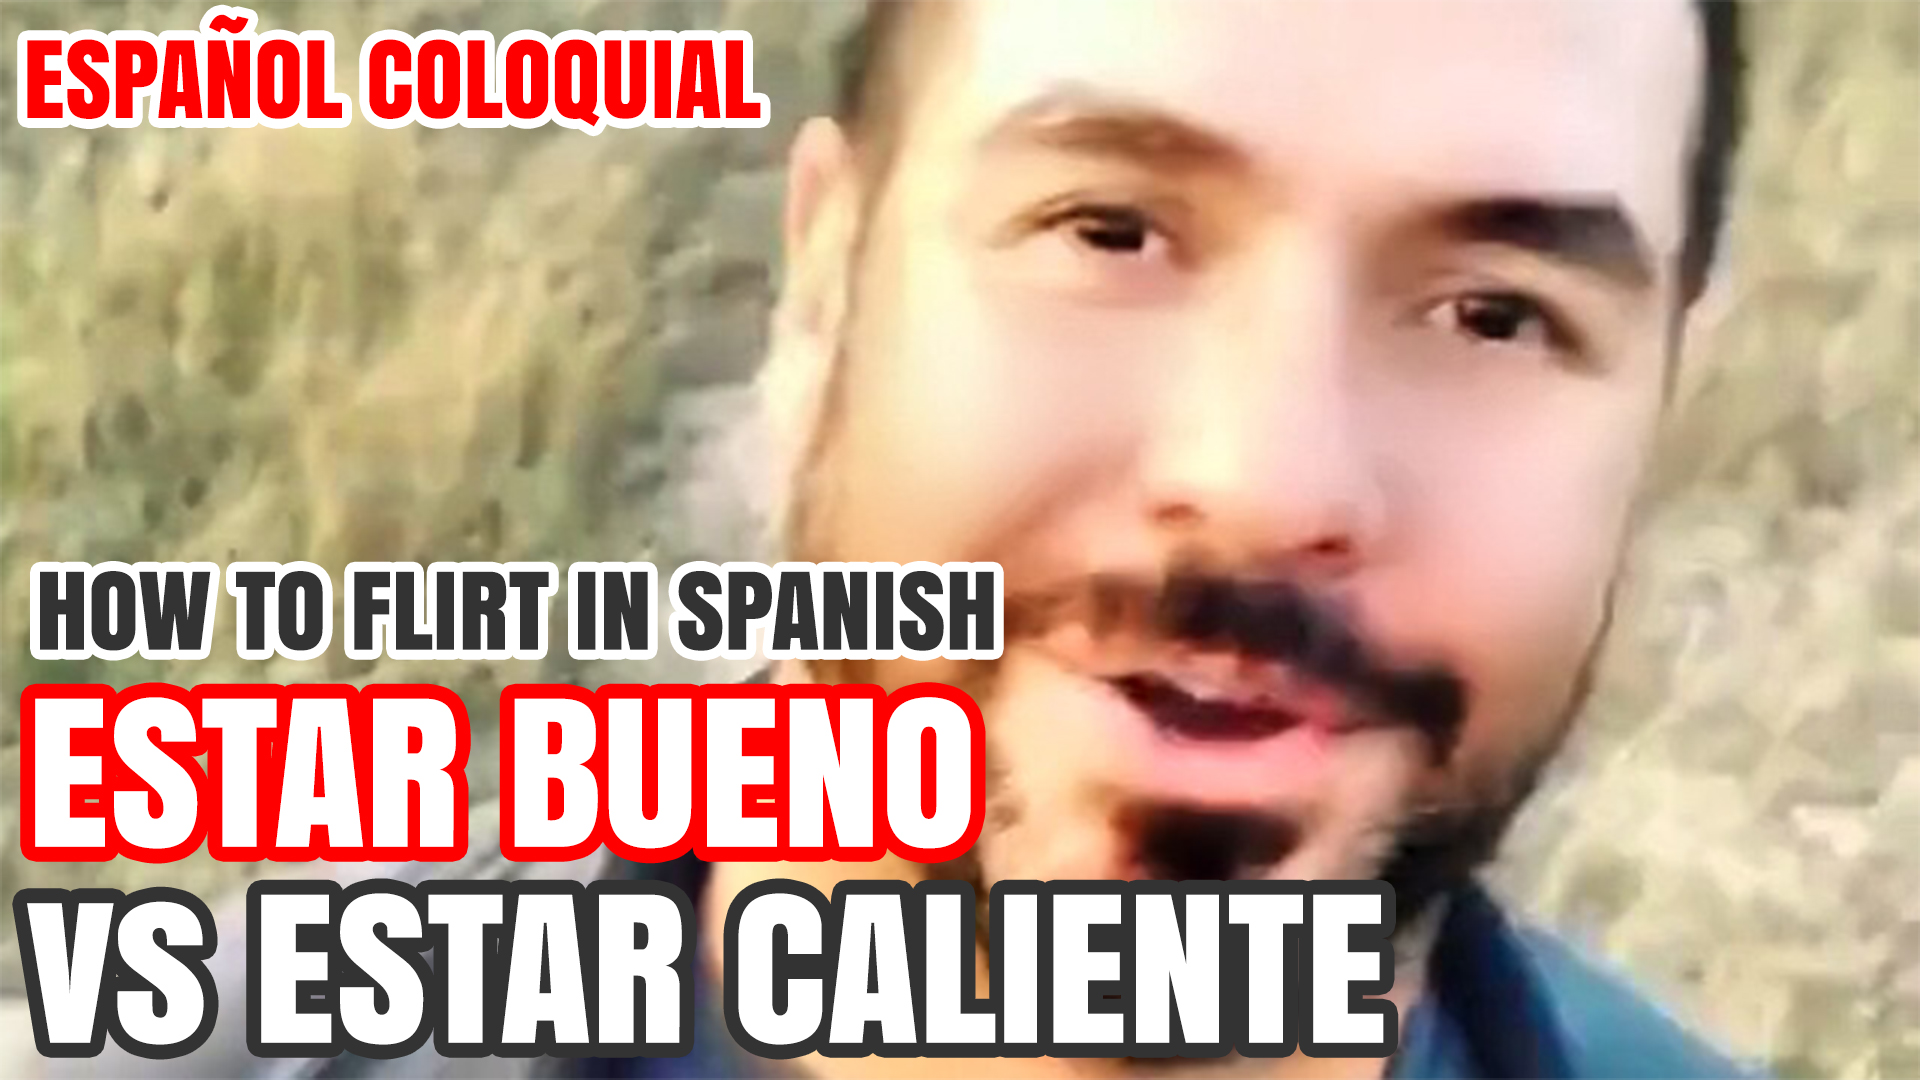 flirting spanish colloquial estar bueno caliente